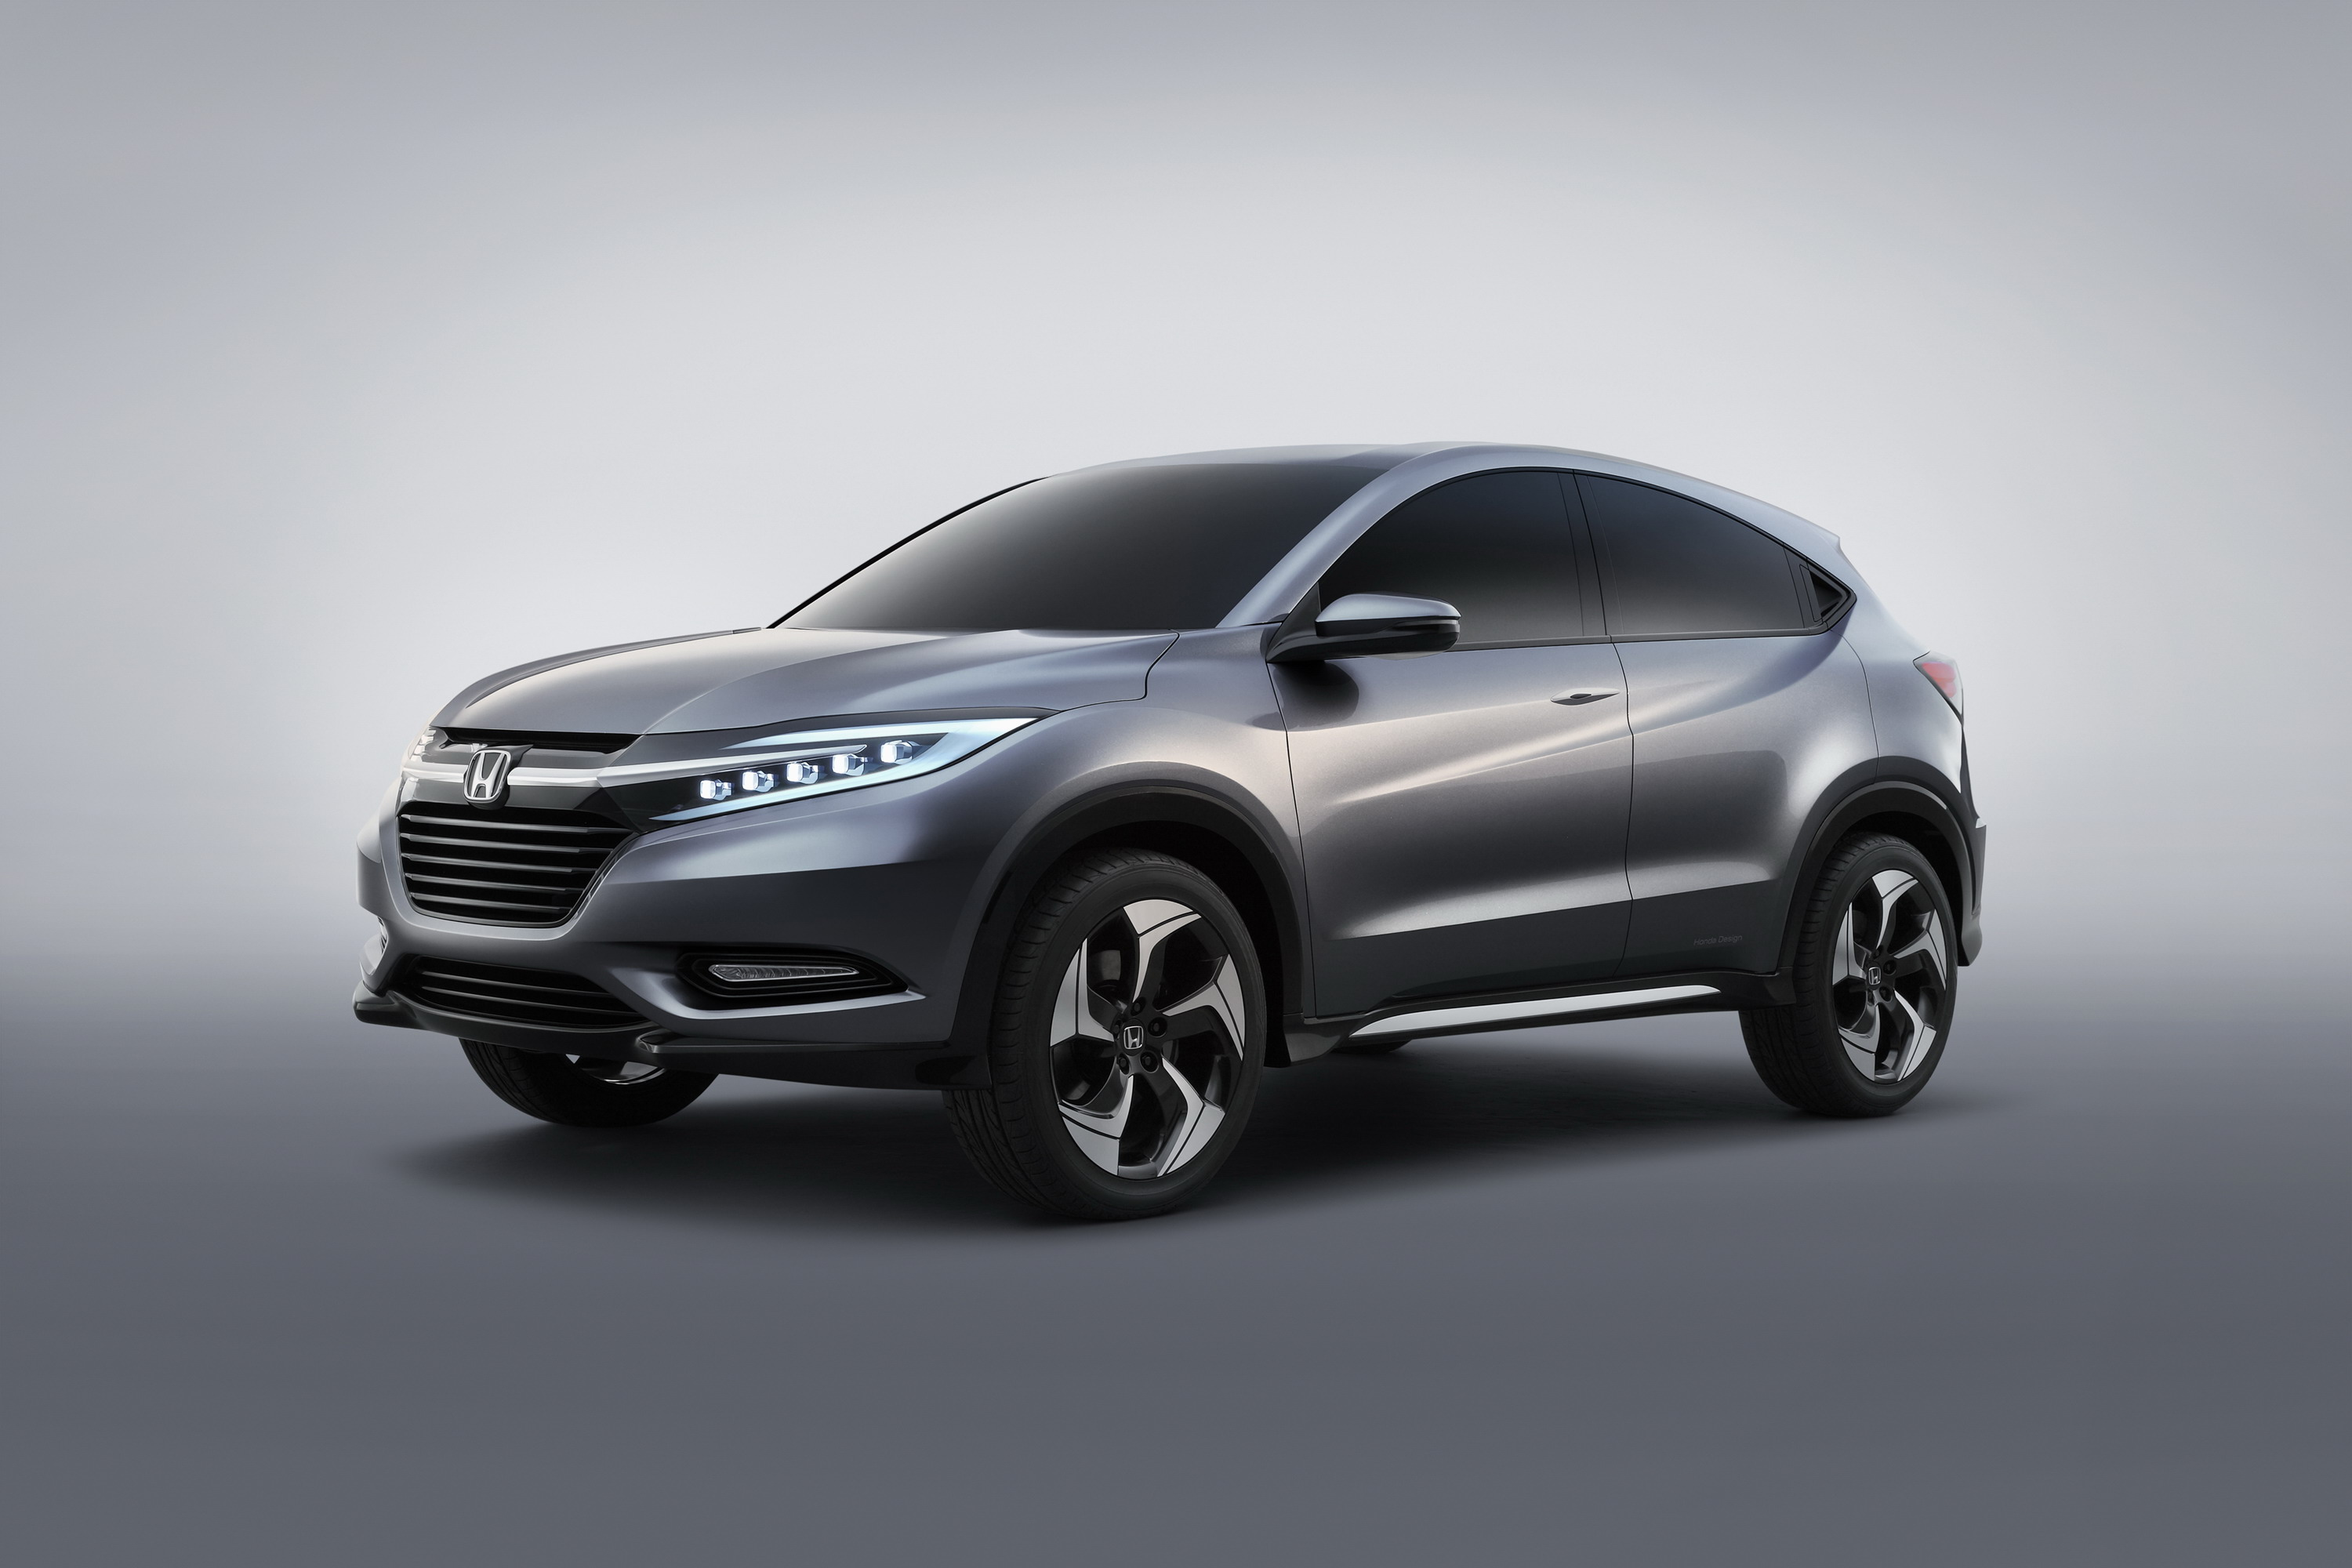 2013 honda urban suv concept review gallery top speed